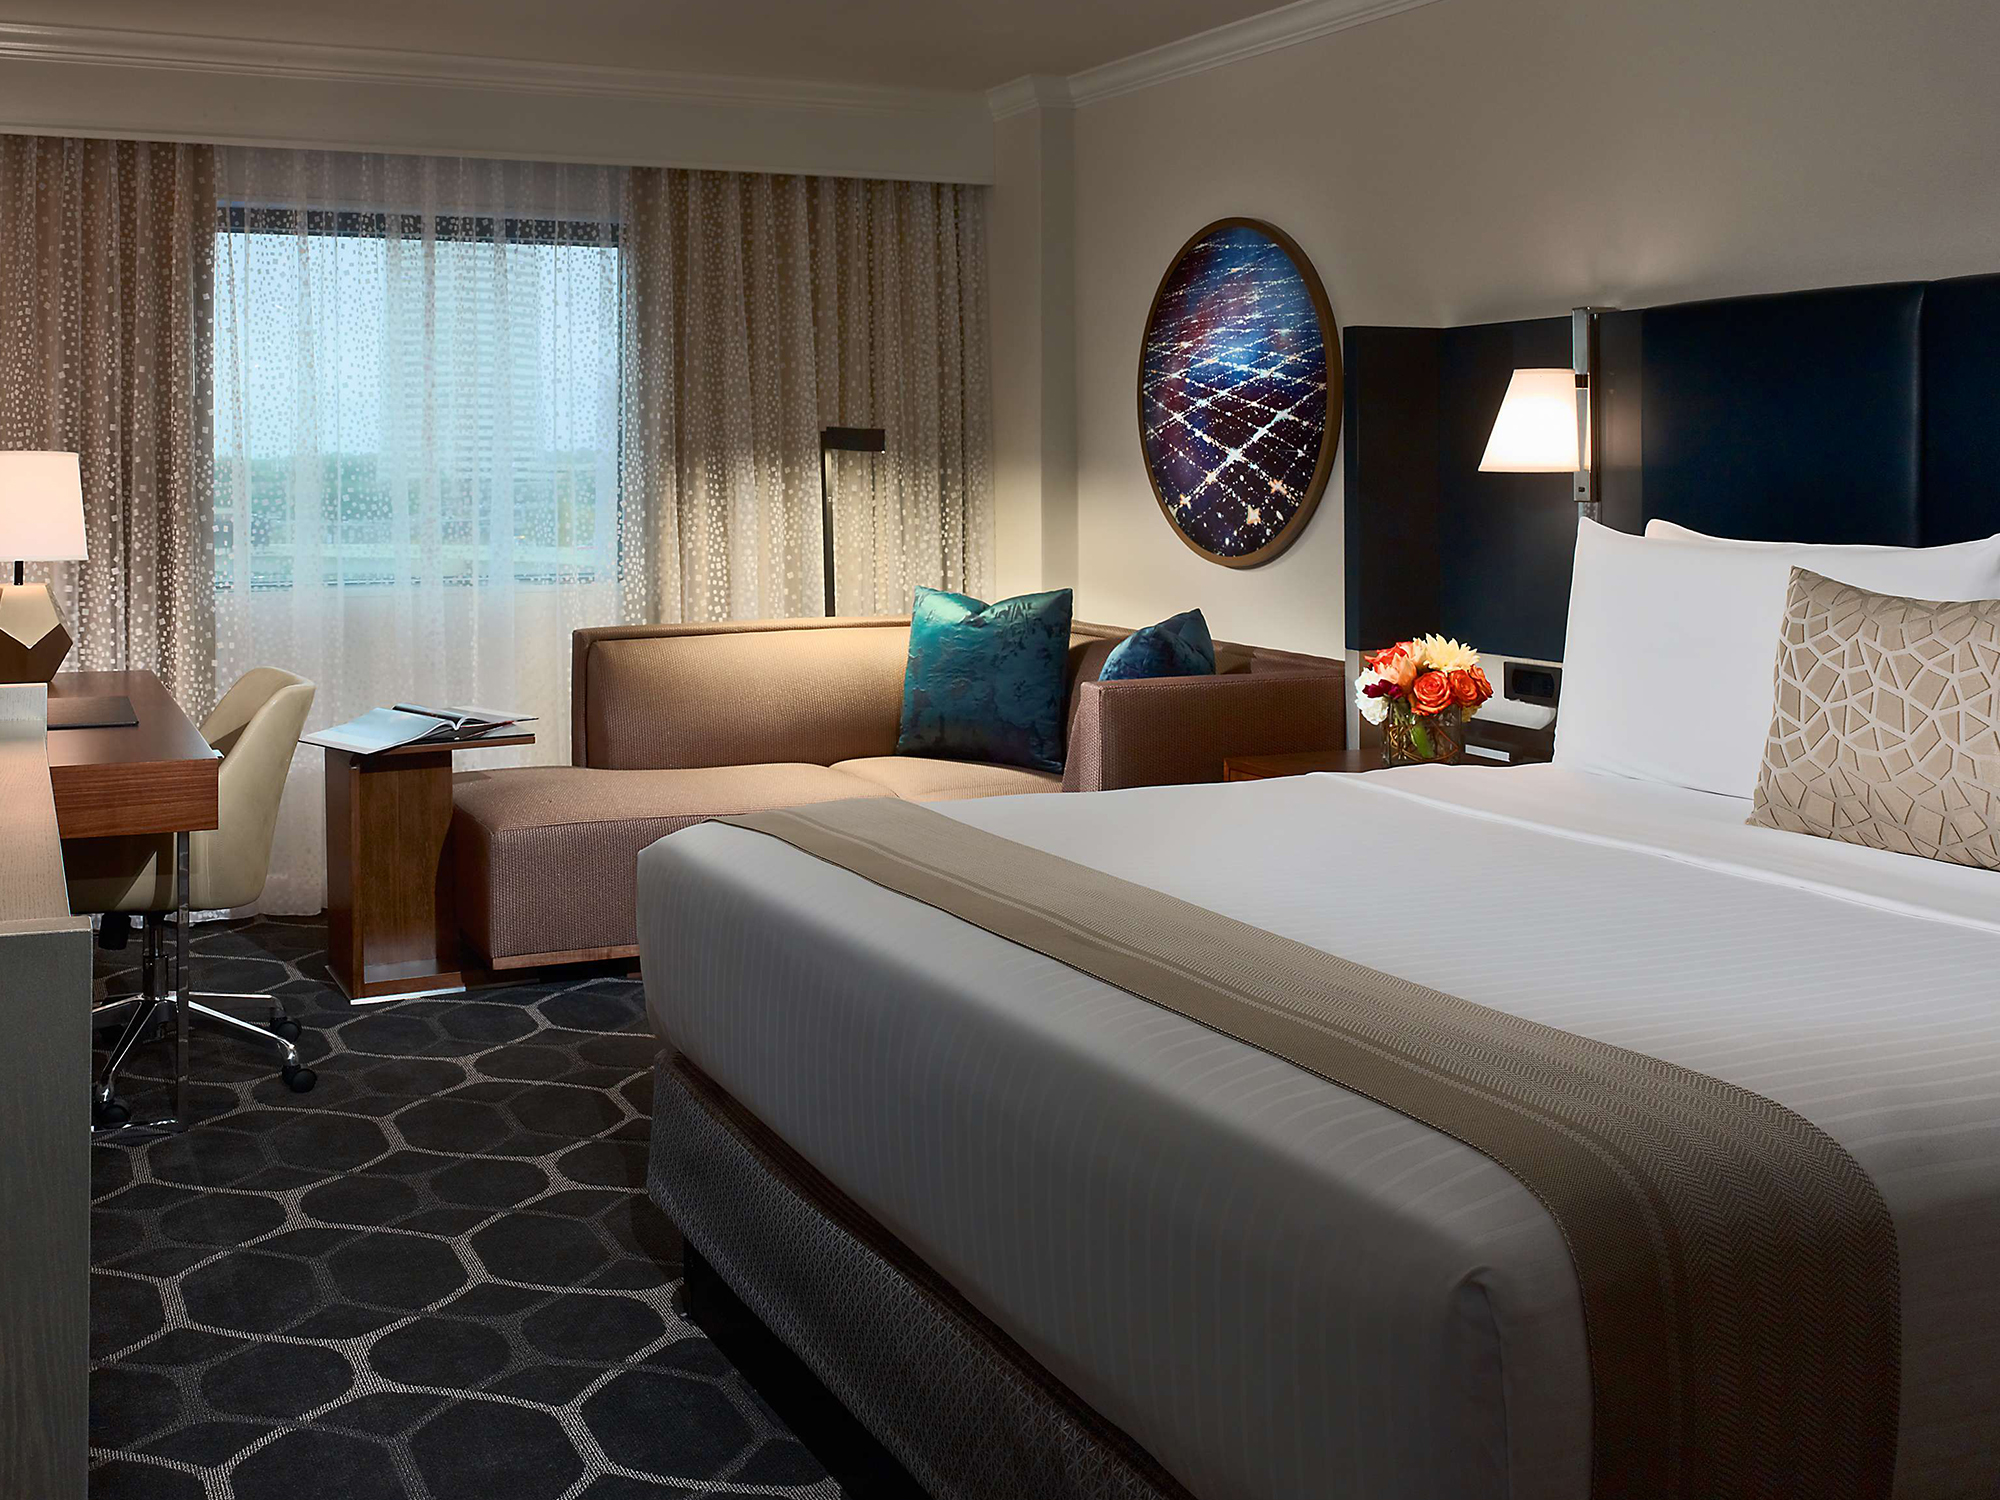 Guest Rooms & Services